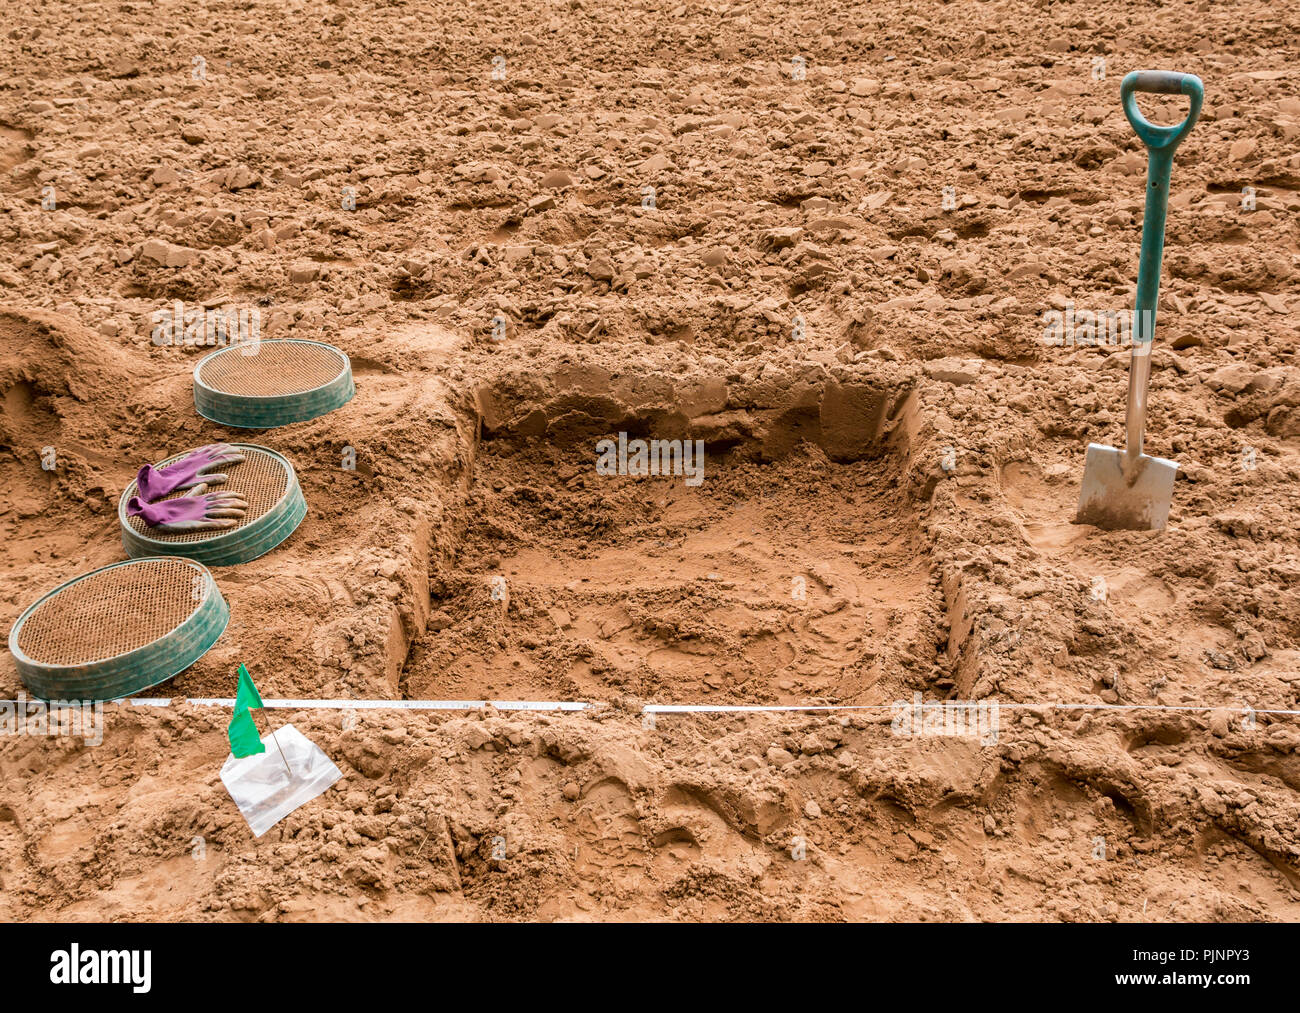 John Muir Country Park, Dunbar, East Lothian, Scotland, UK, 8th September 2018. East Lothian Council Archaeology Service test digging pits in an earth field to find evidence of a rediscovered Neolithic agricultural settlement. The test pits are thought to be the site of a Neolithic settlement where flints have been found Stock Photo